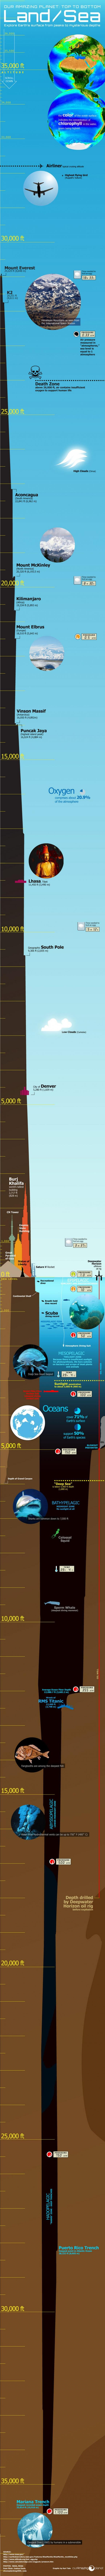 From The Tallest Mountain To The Deepest Trench (Infographic) | ScienceDump